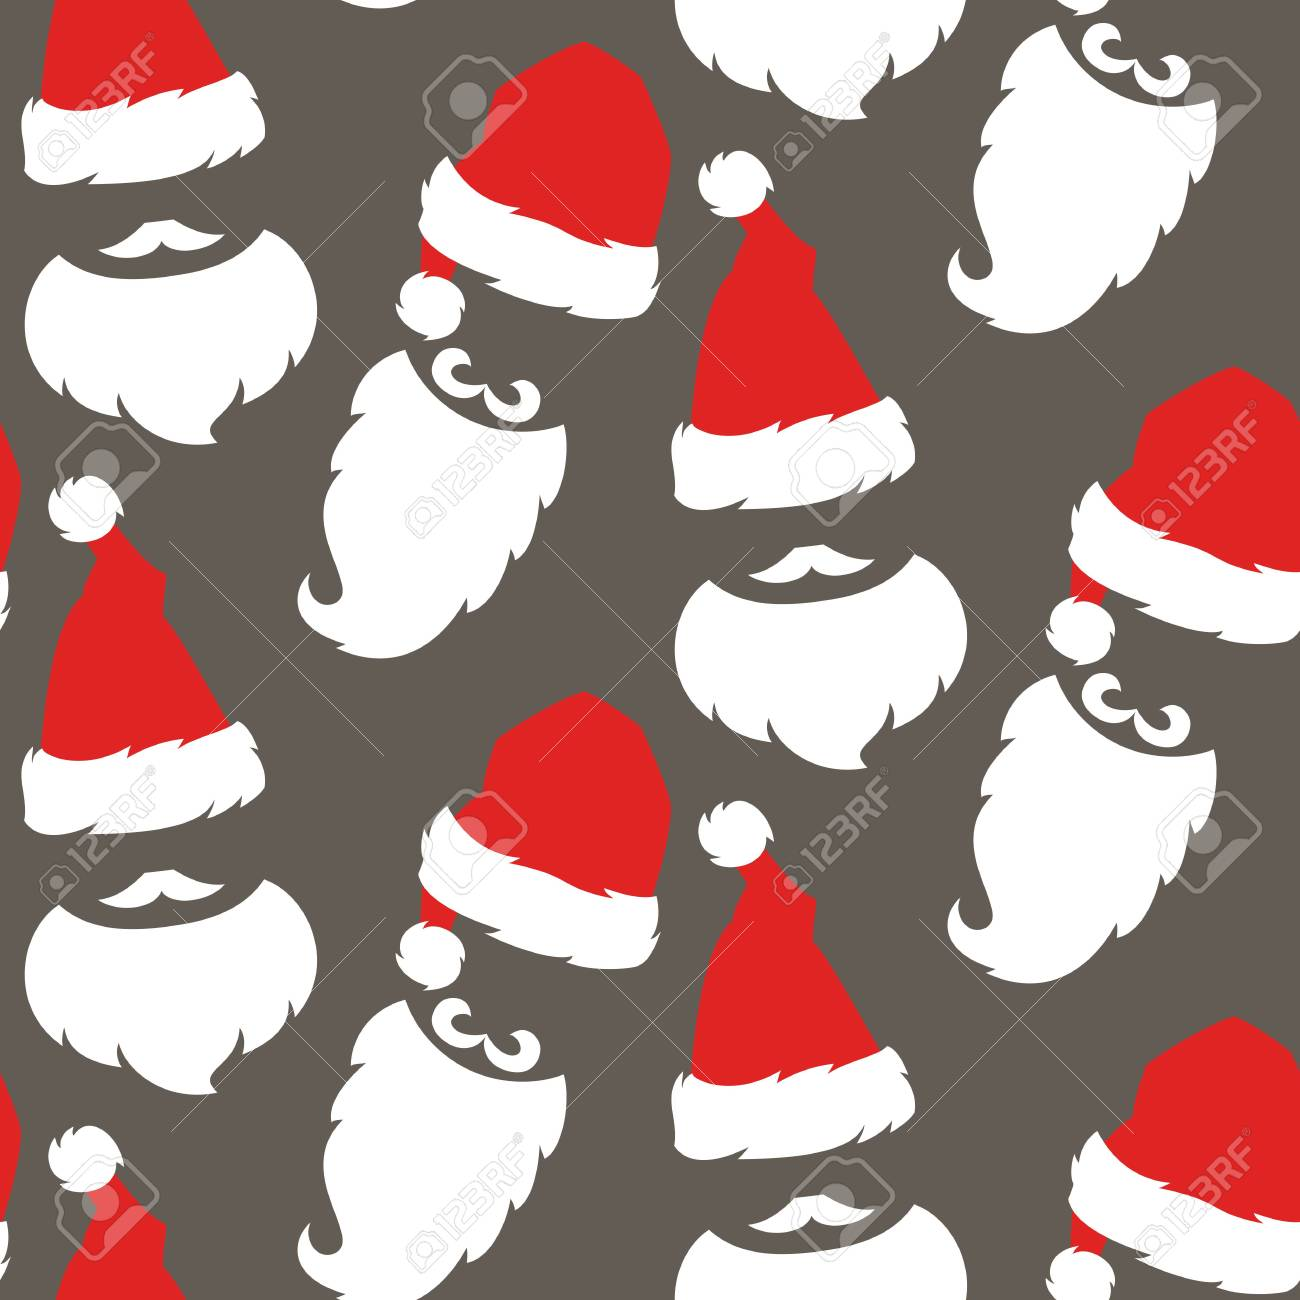 0dbd39e7659e9 Seamless pattern with Red hats and beard of Santa Claus. Vector illustration.  Stock Vector